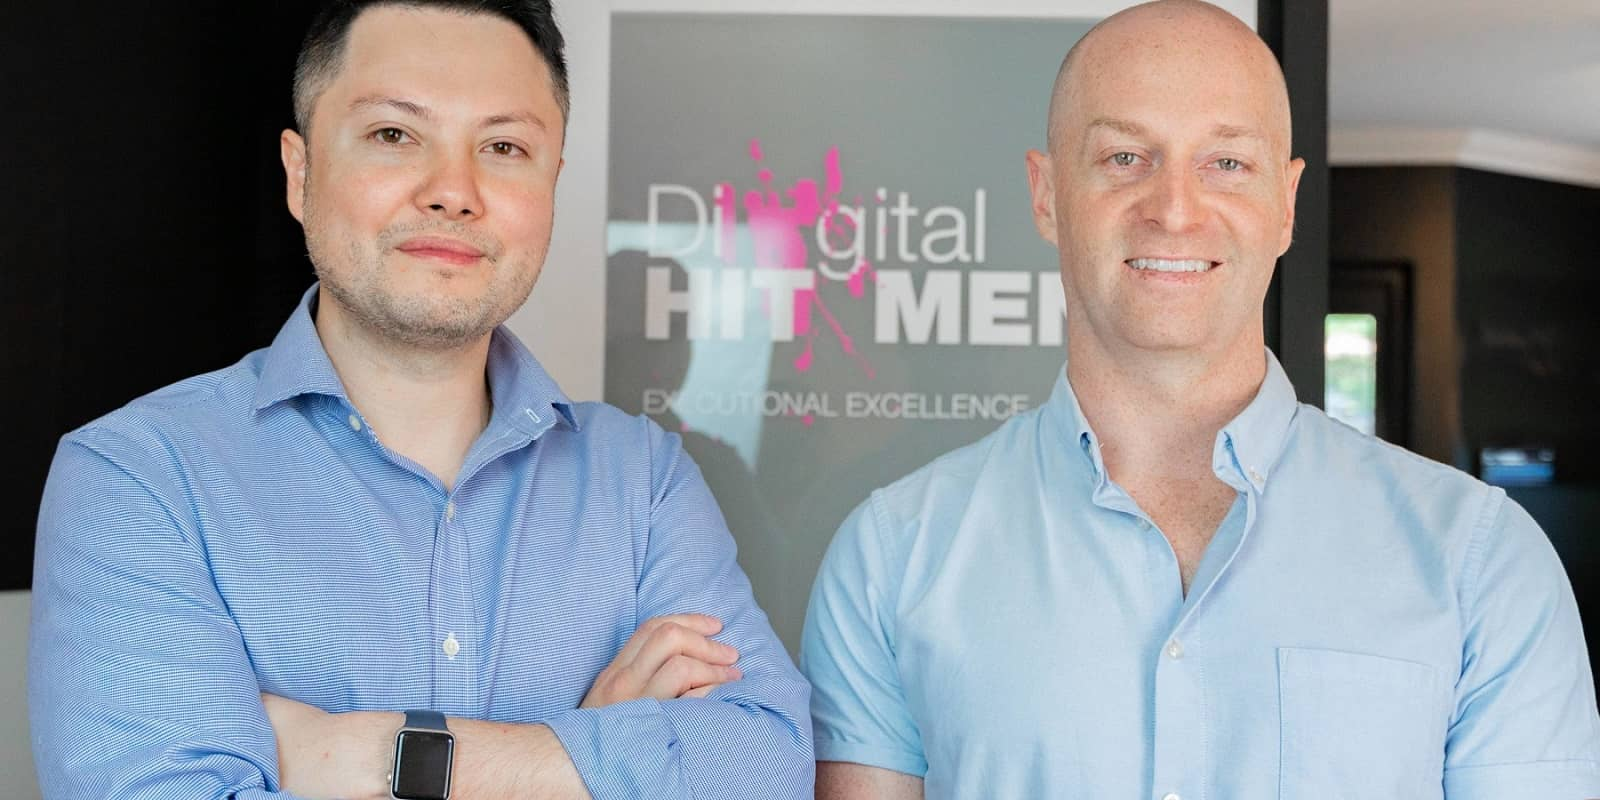 Levi Saunders and Richard Parr discussing online chat and its benefits